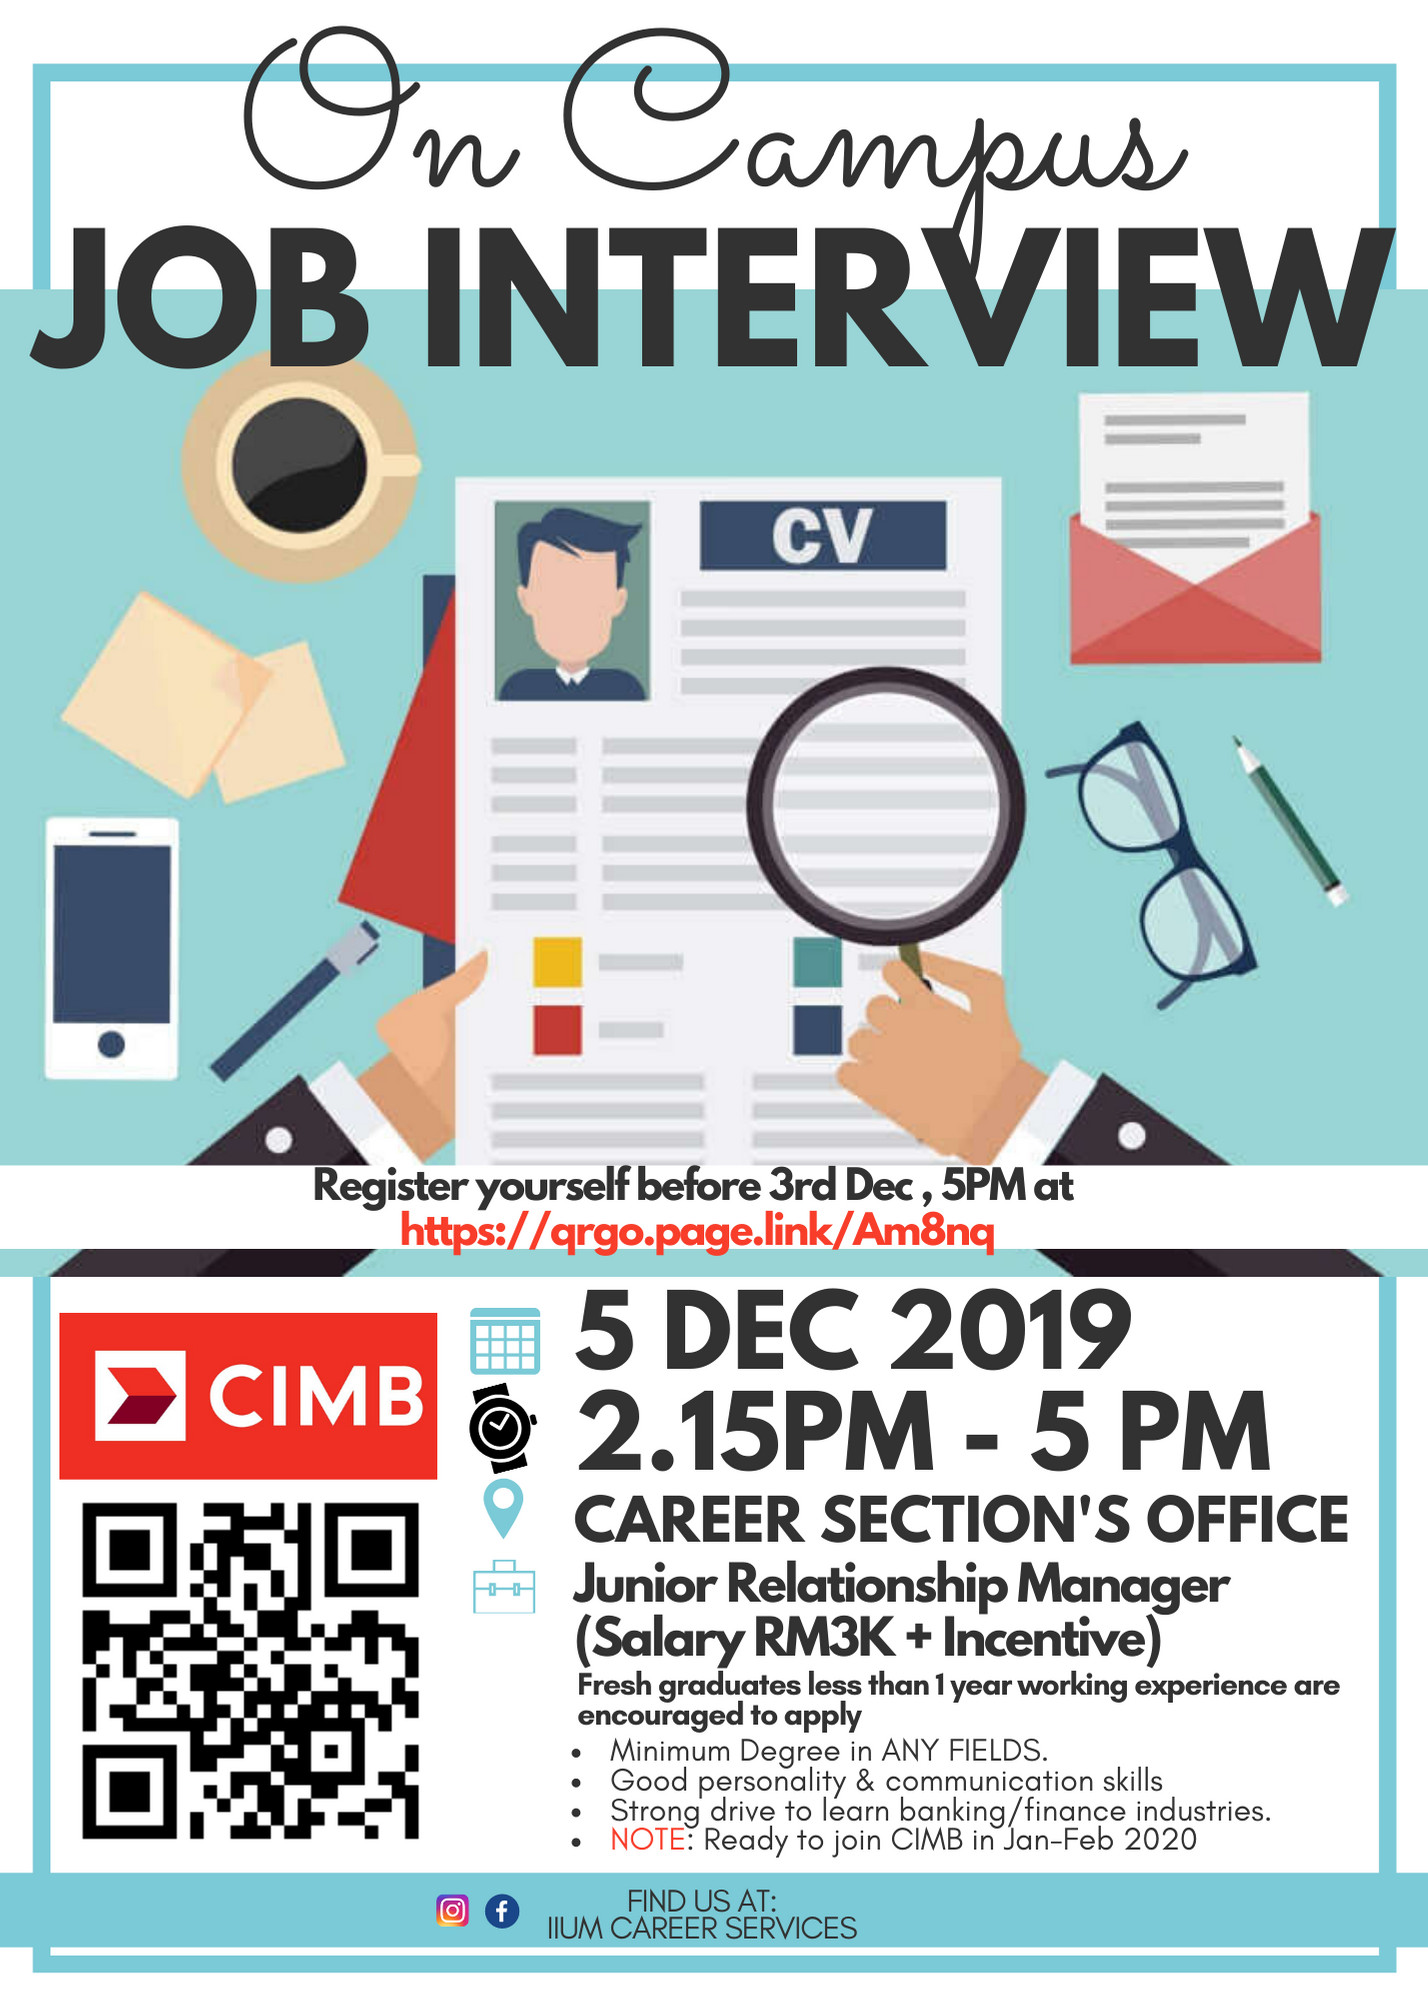 ON CAMPUS JOB INTERVIEW WITH CIMB